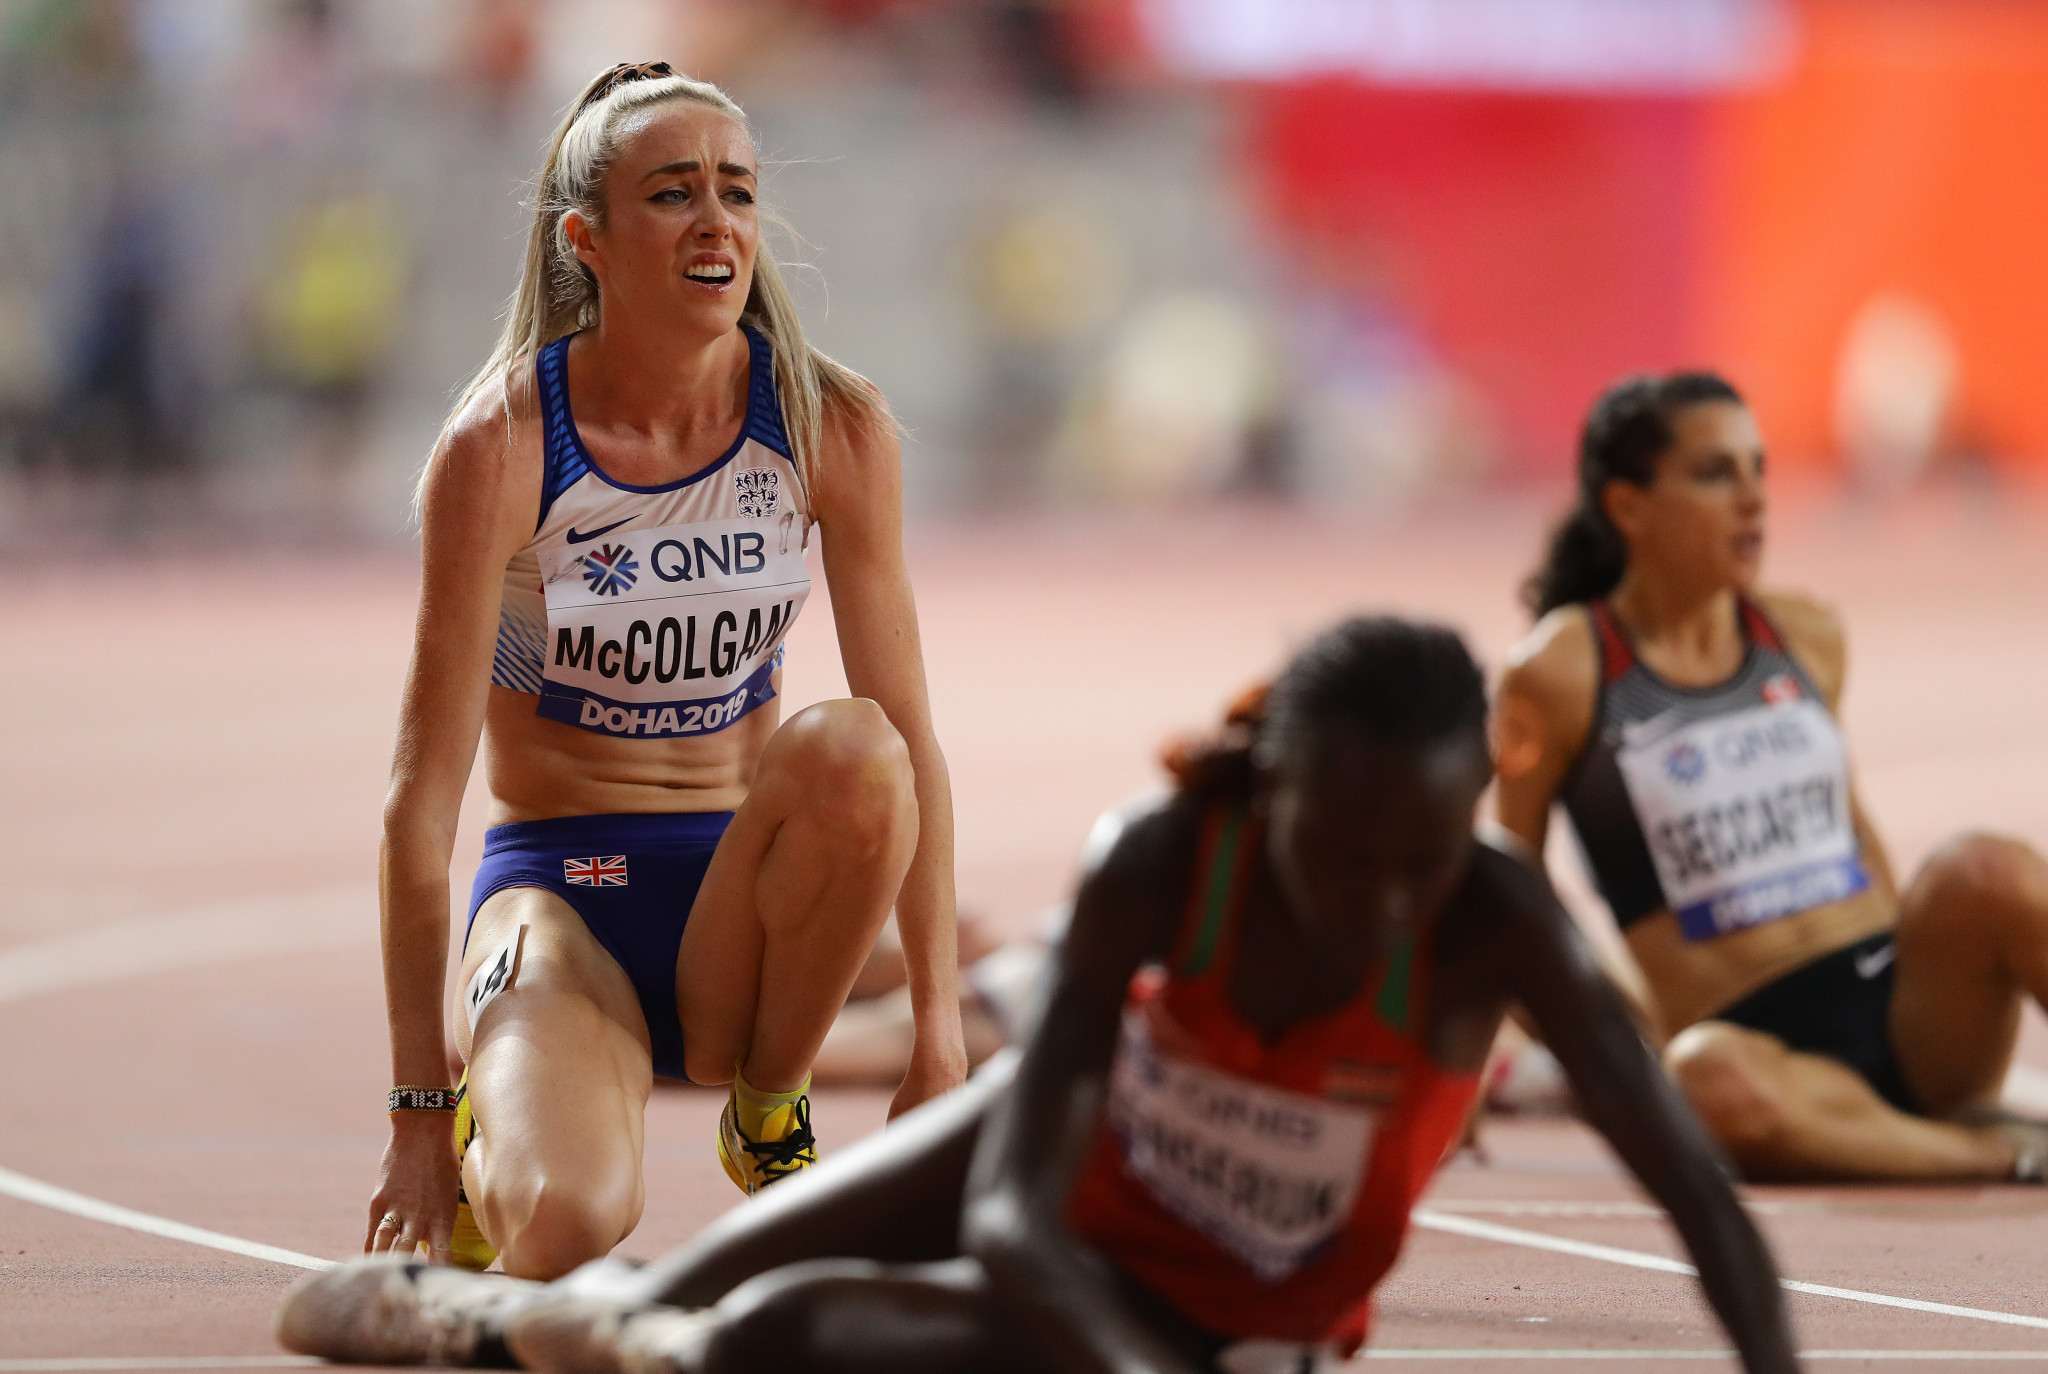 Distance runner McColgan eyes marathon at Paris 2024